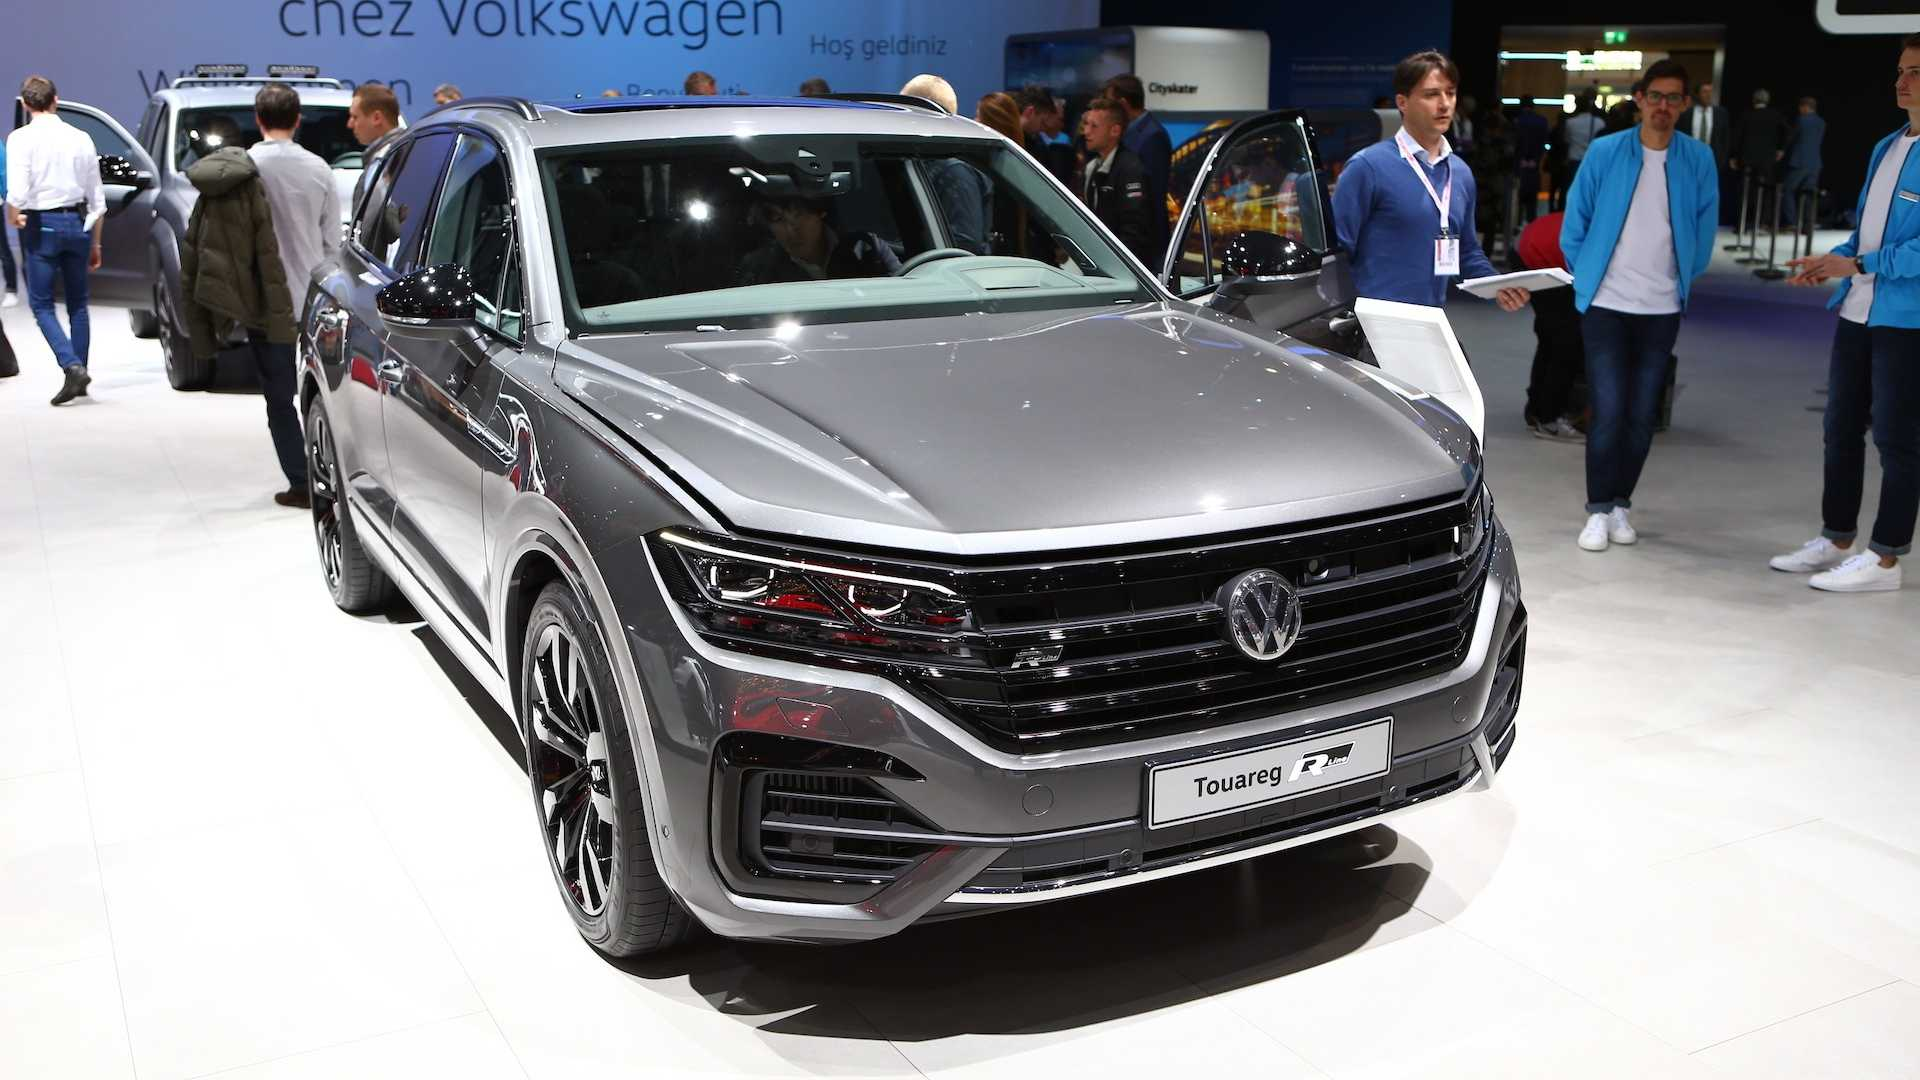 56 All New 2020 Volkswagen Touareg Research New